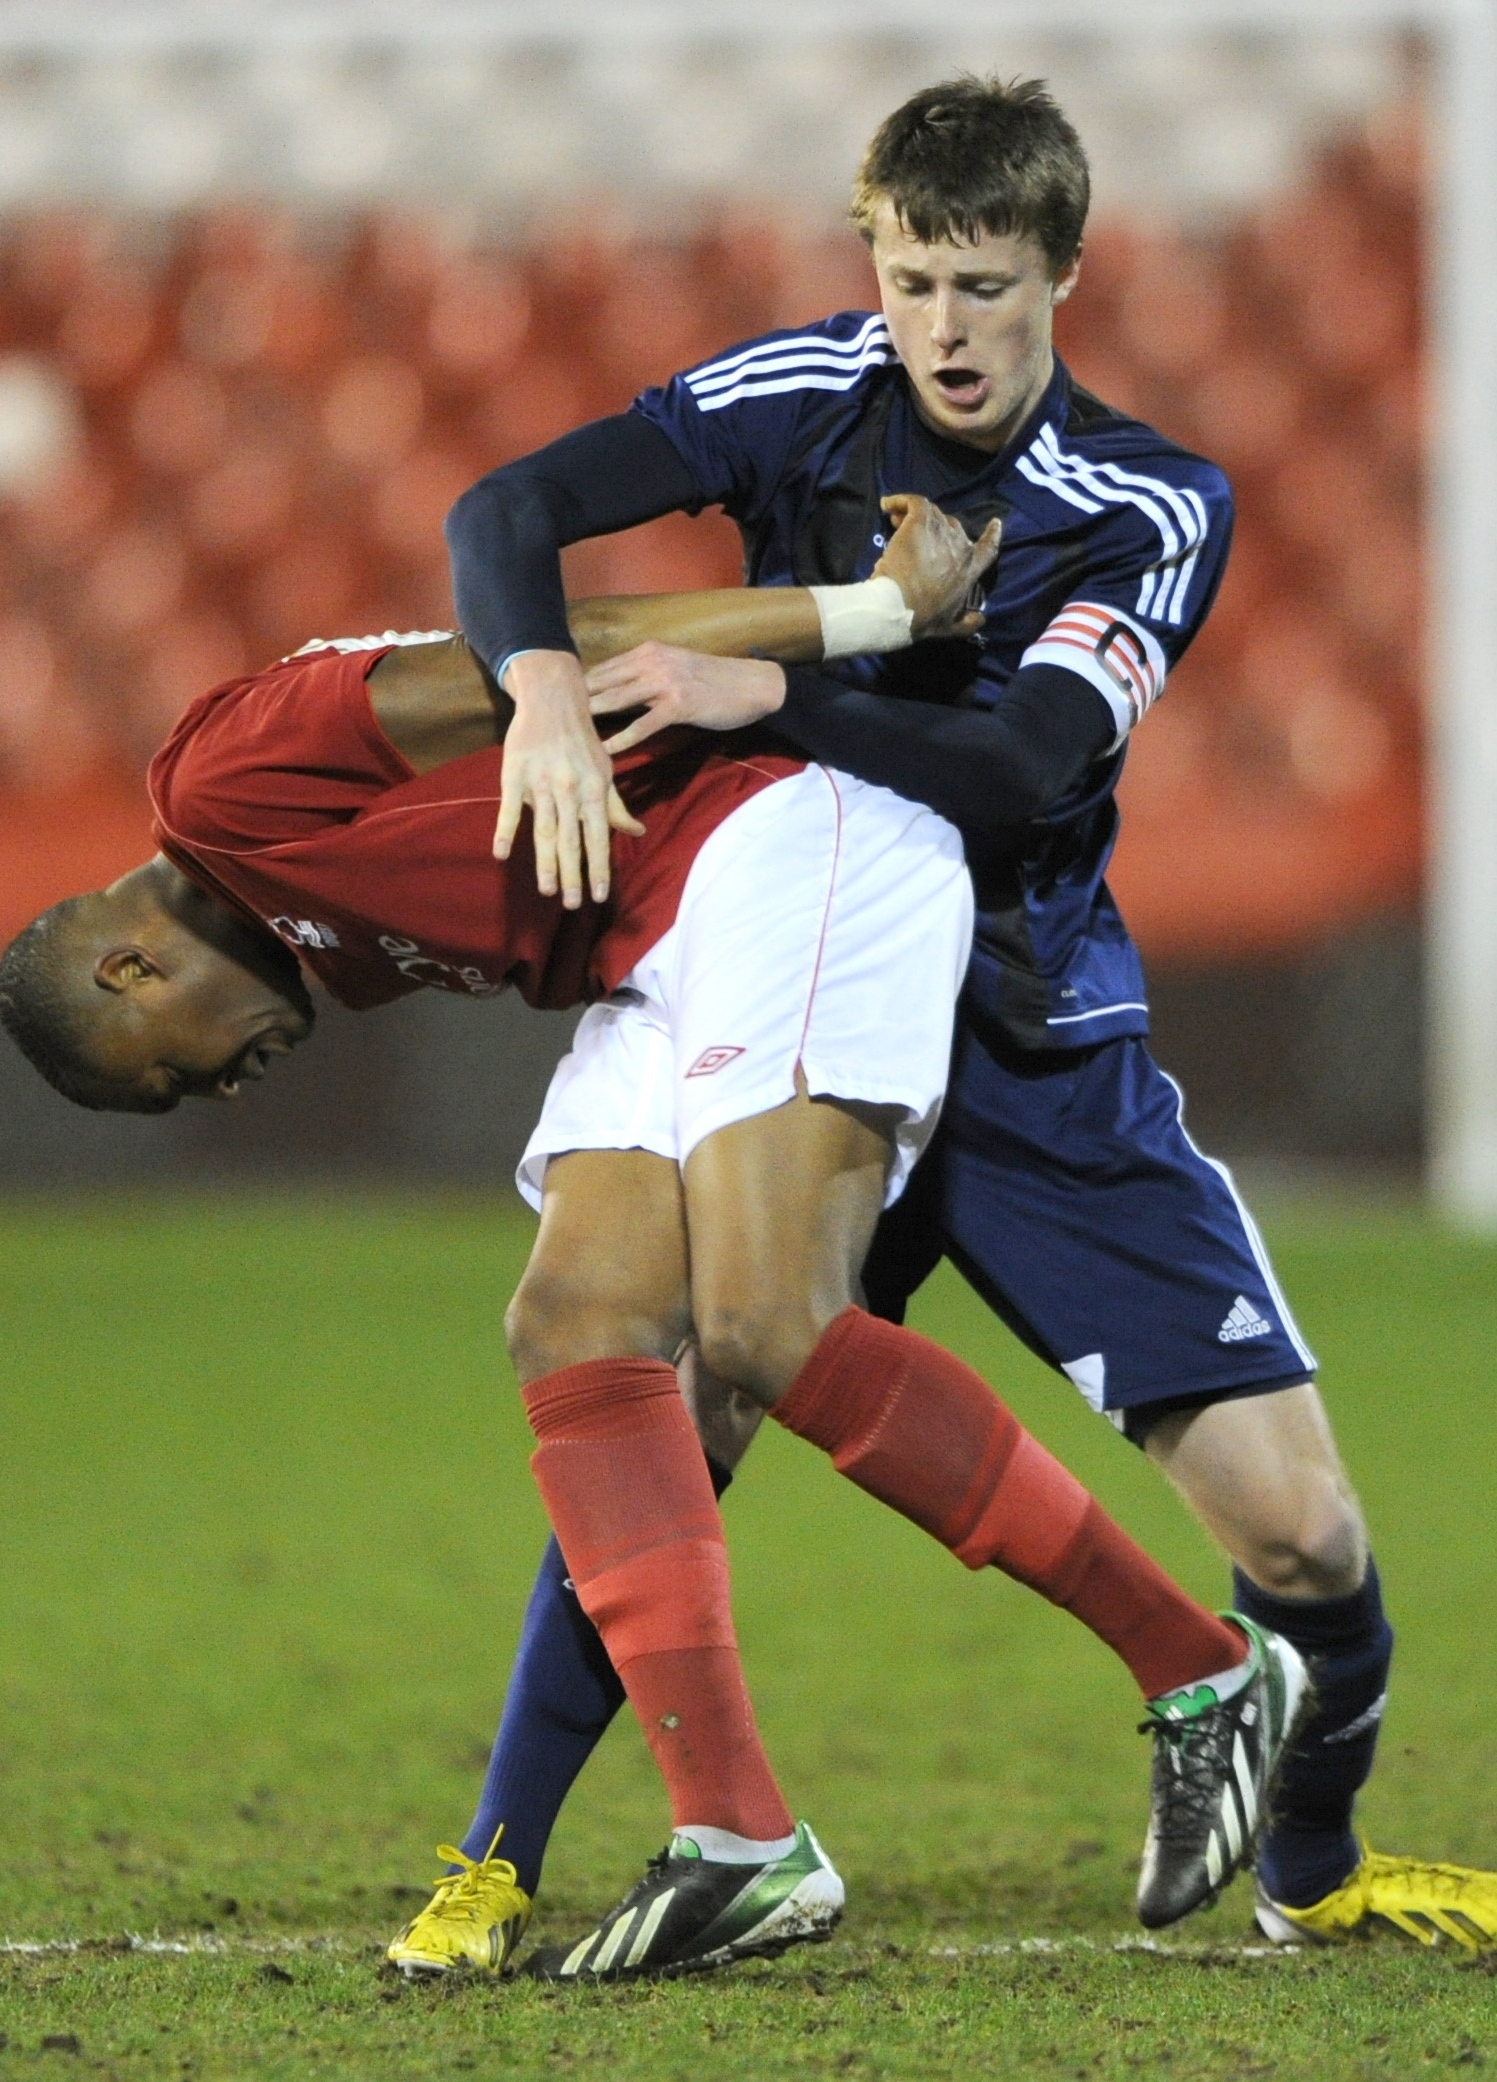 Niall Maher in action for Wanderers in the FA Youth Cup quarter final against Nottingham Forest